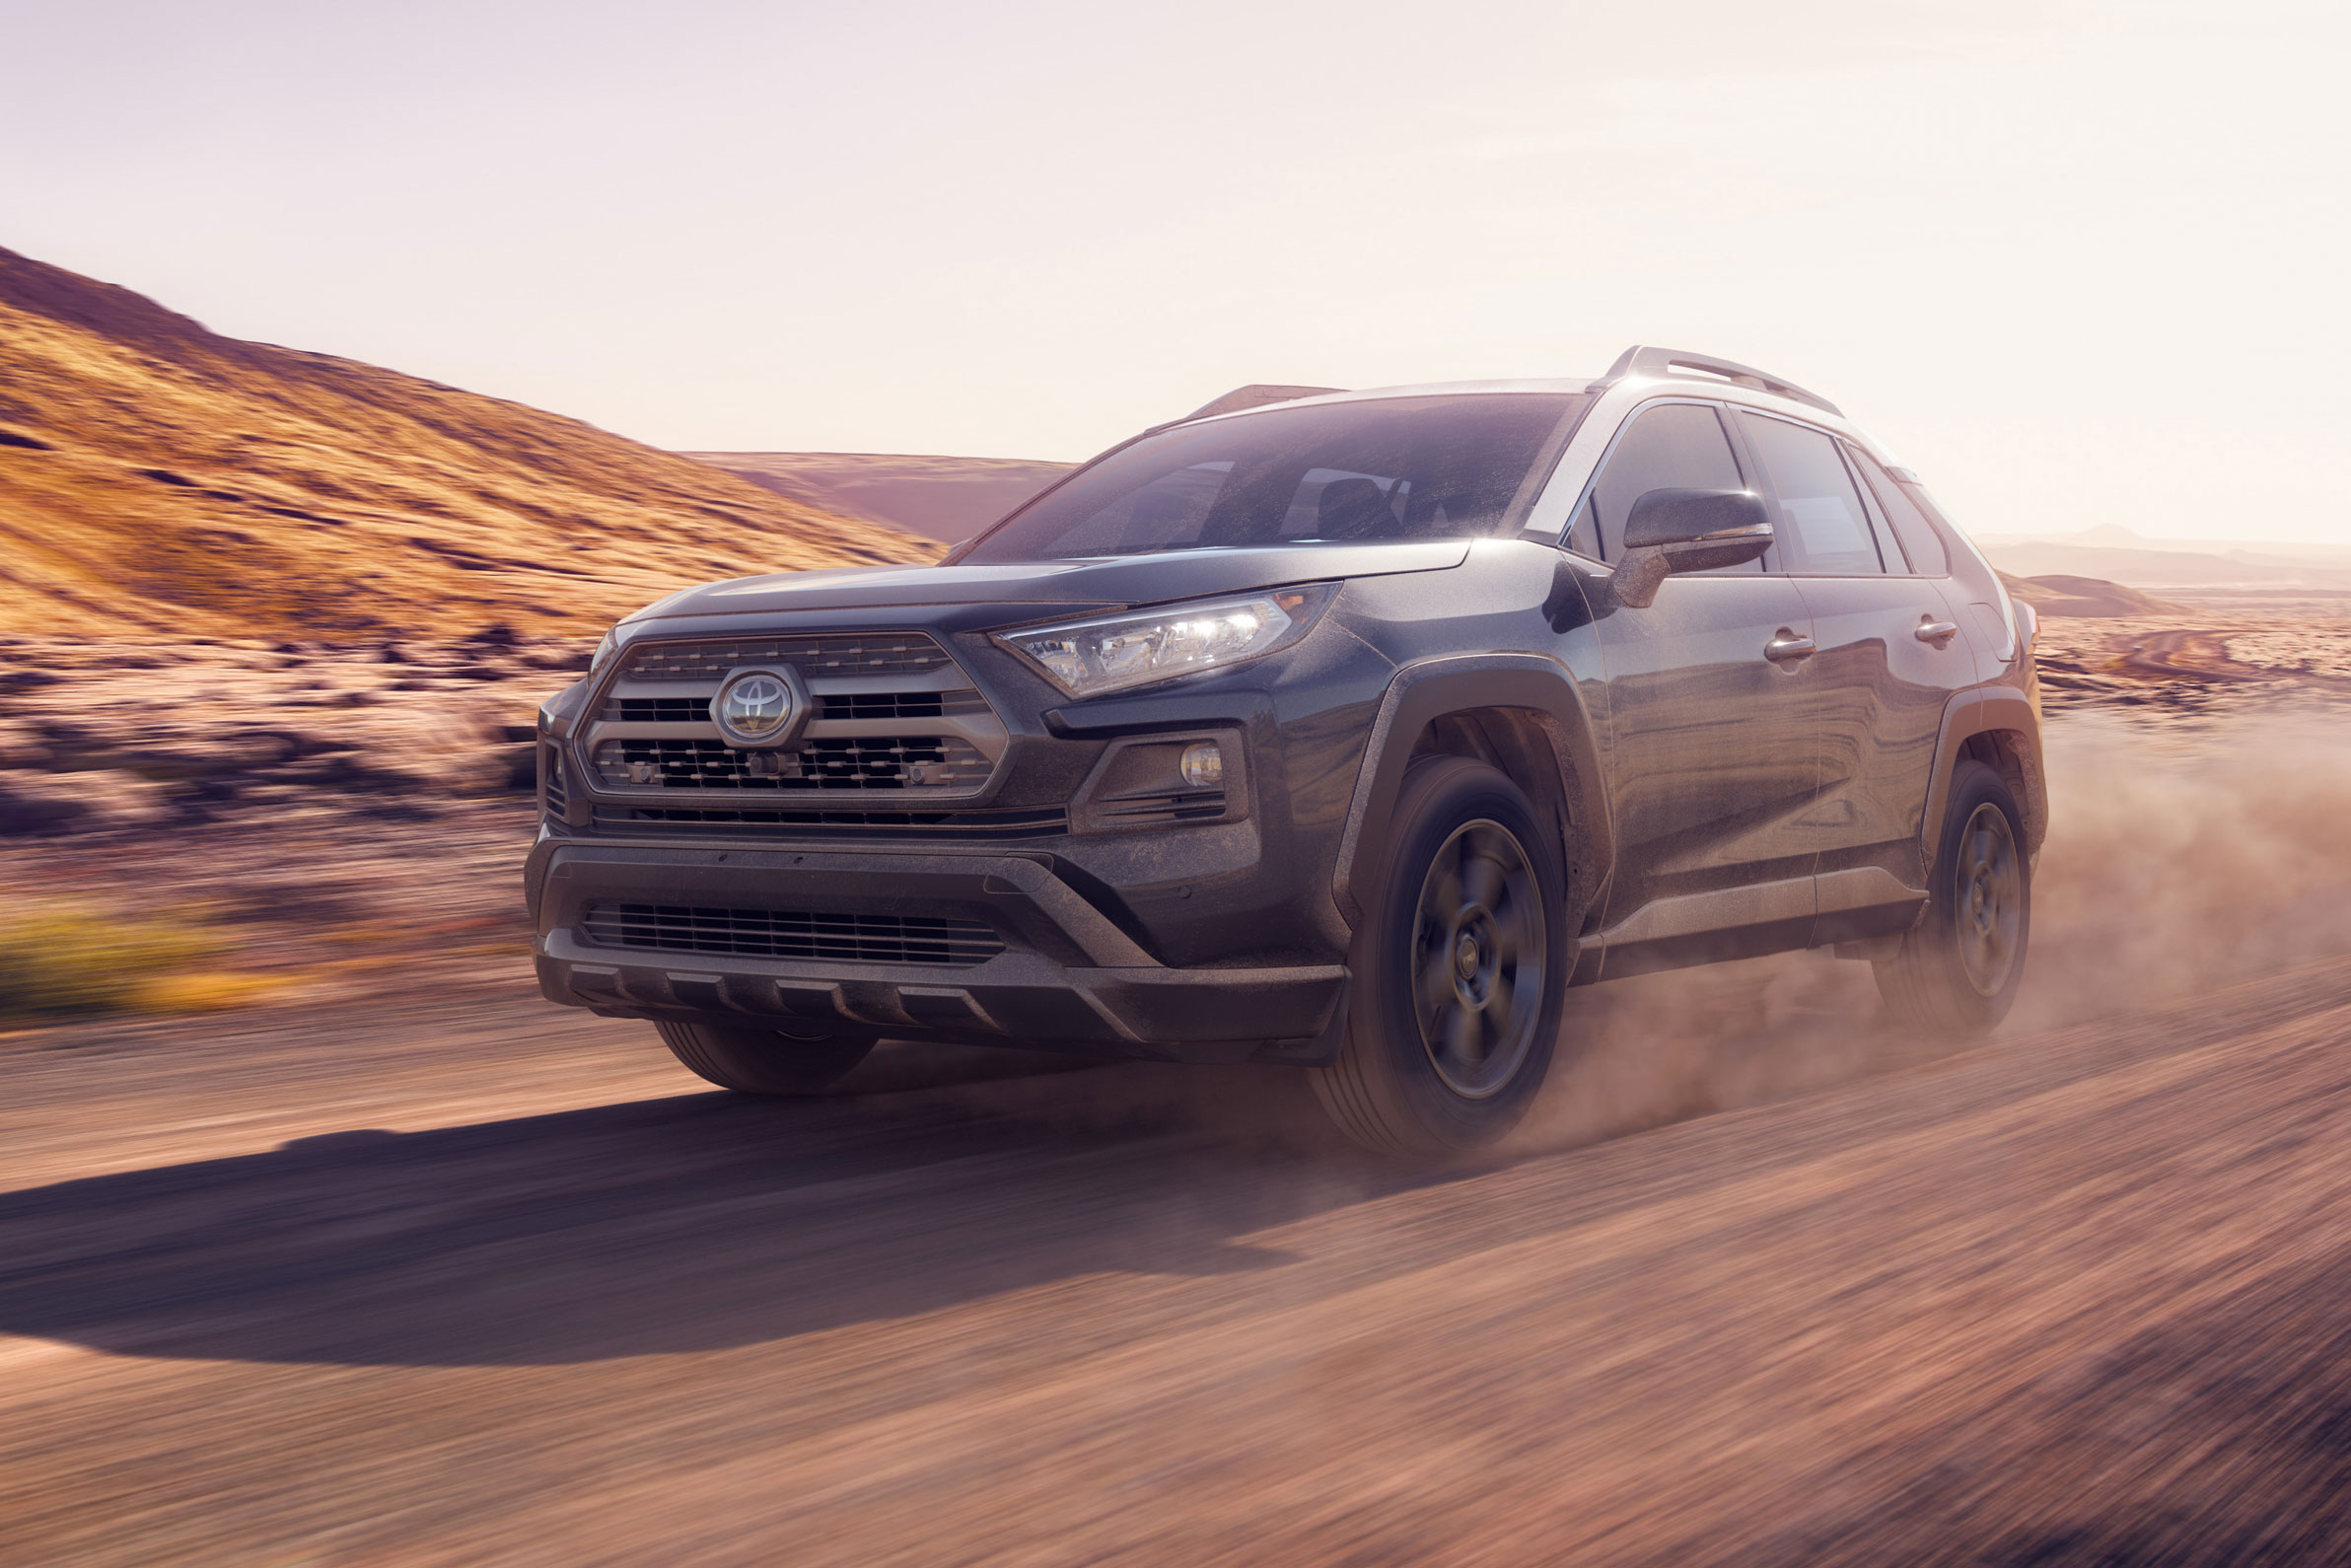 2020 Toyota RAV4 TRD Off-Road on a dirt road